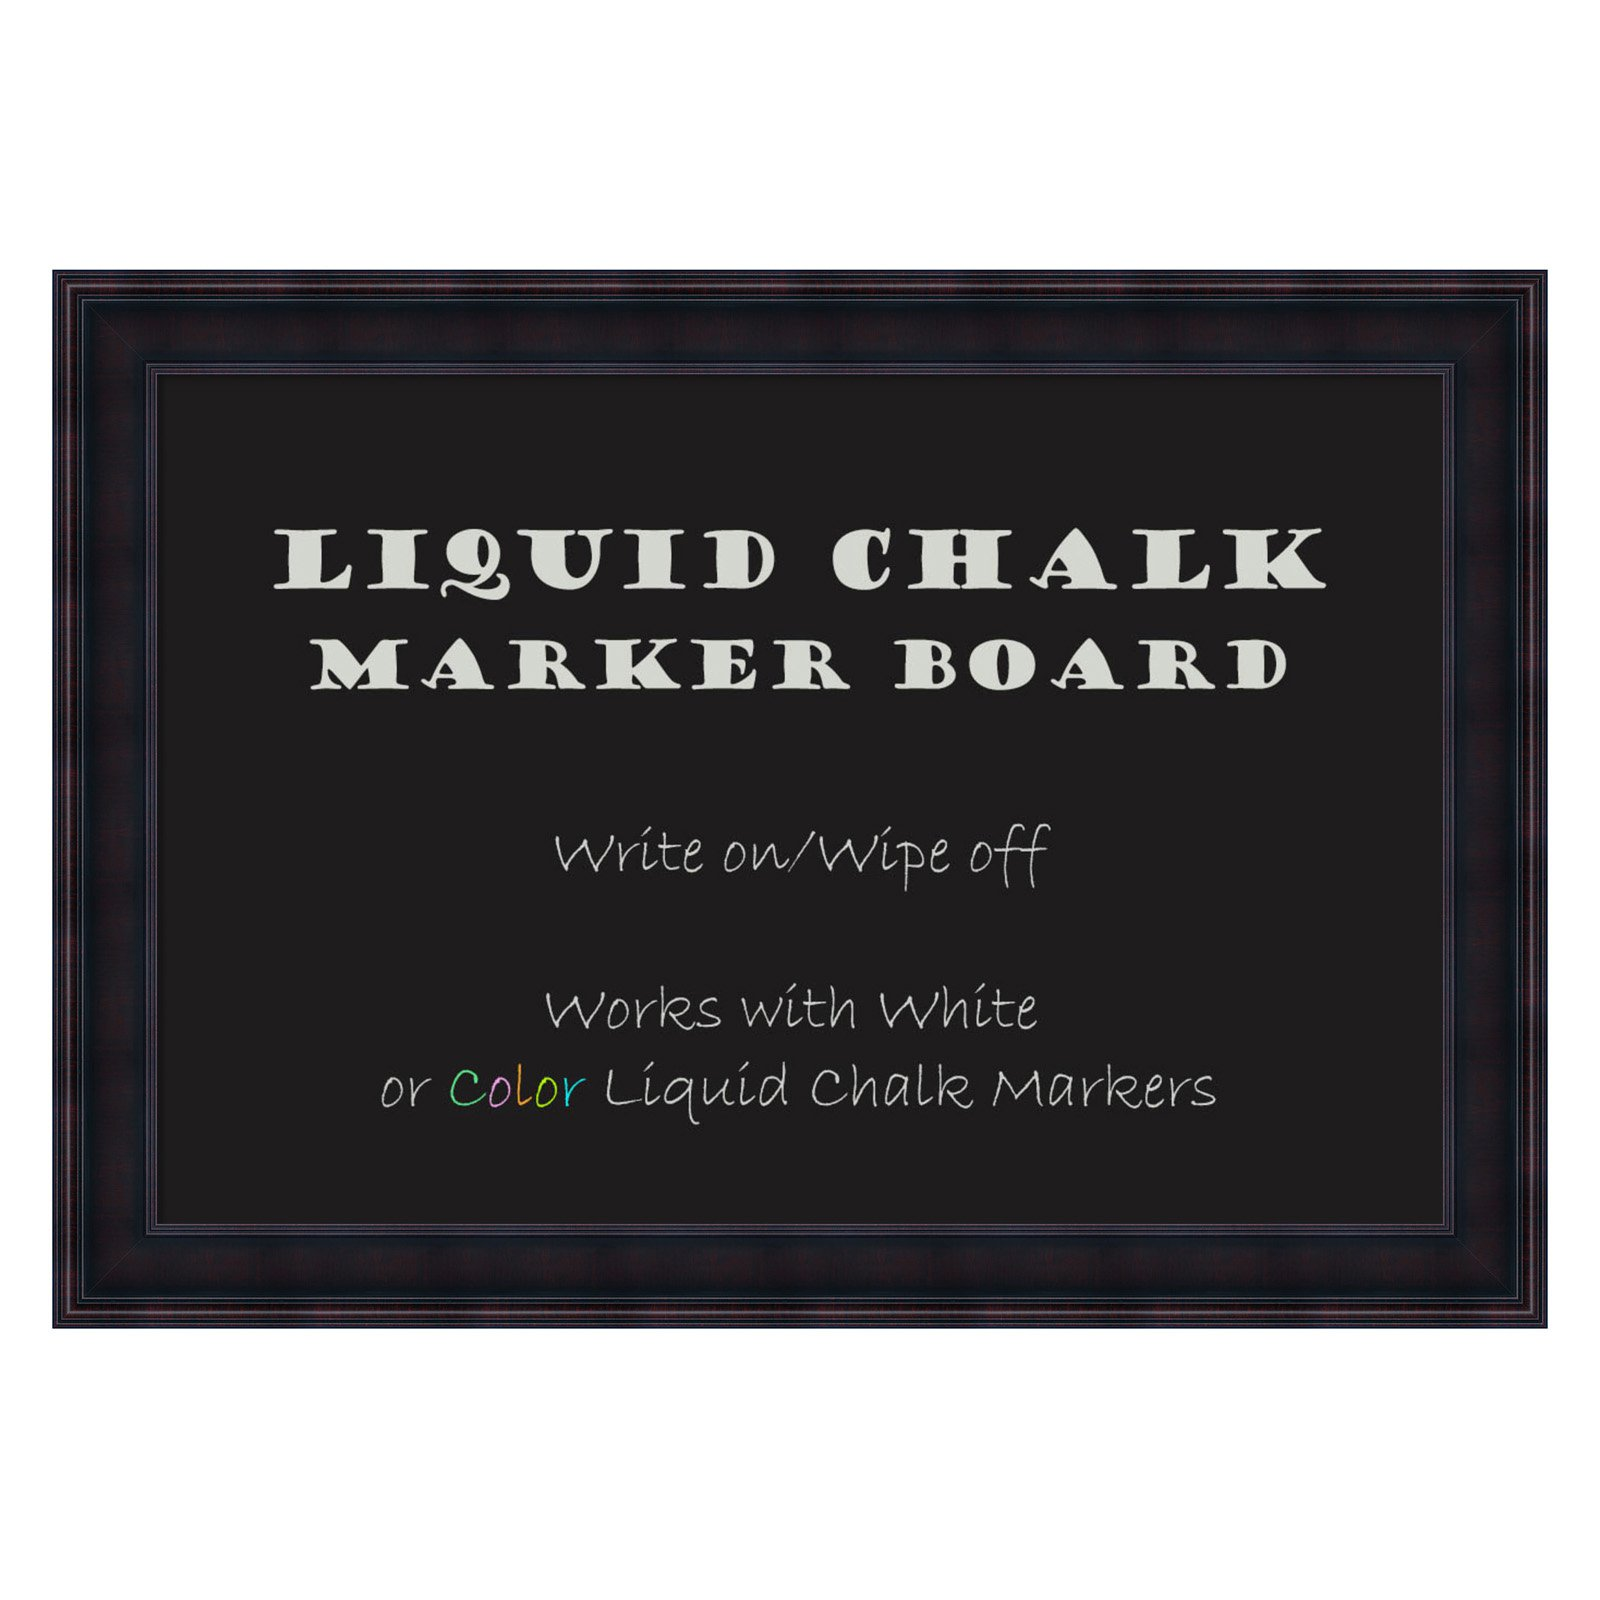 Amanti Art Annatto Framed Liquid Chalk Marker Board